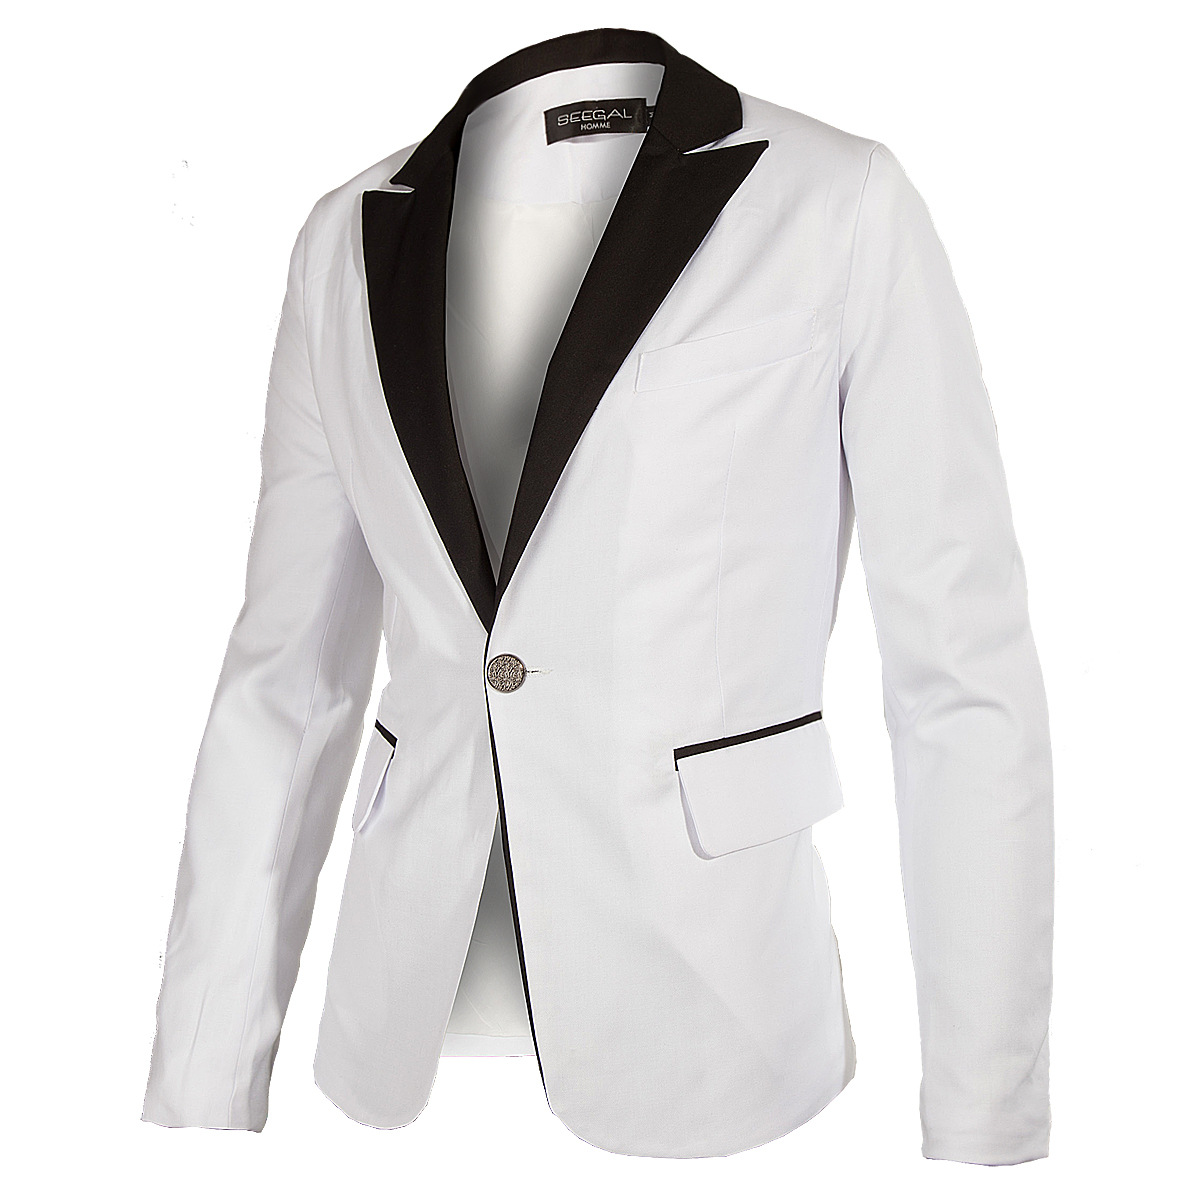 Compare Prices on White Mens Blazer- Online Shopping/Buy Low Price ...